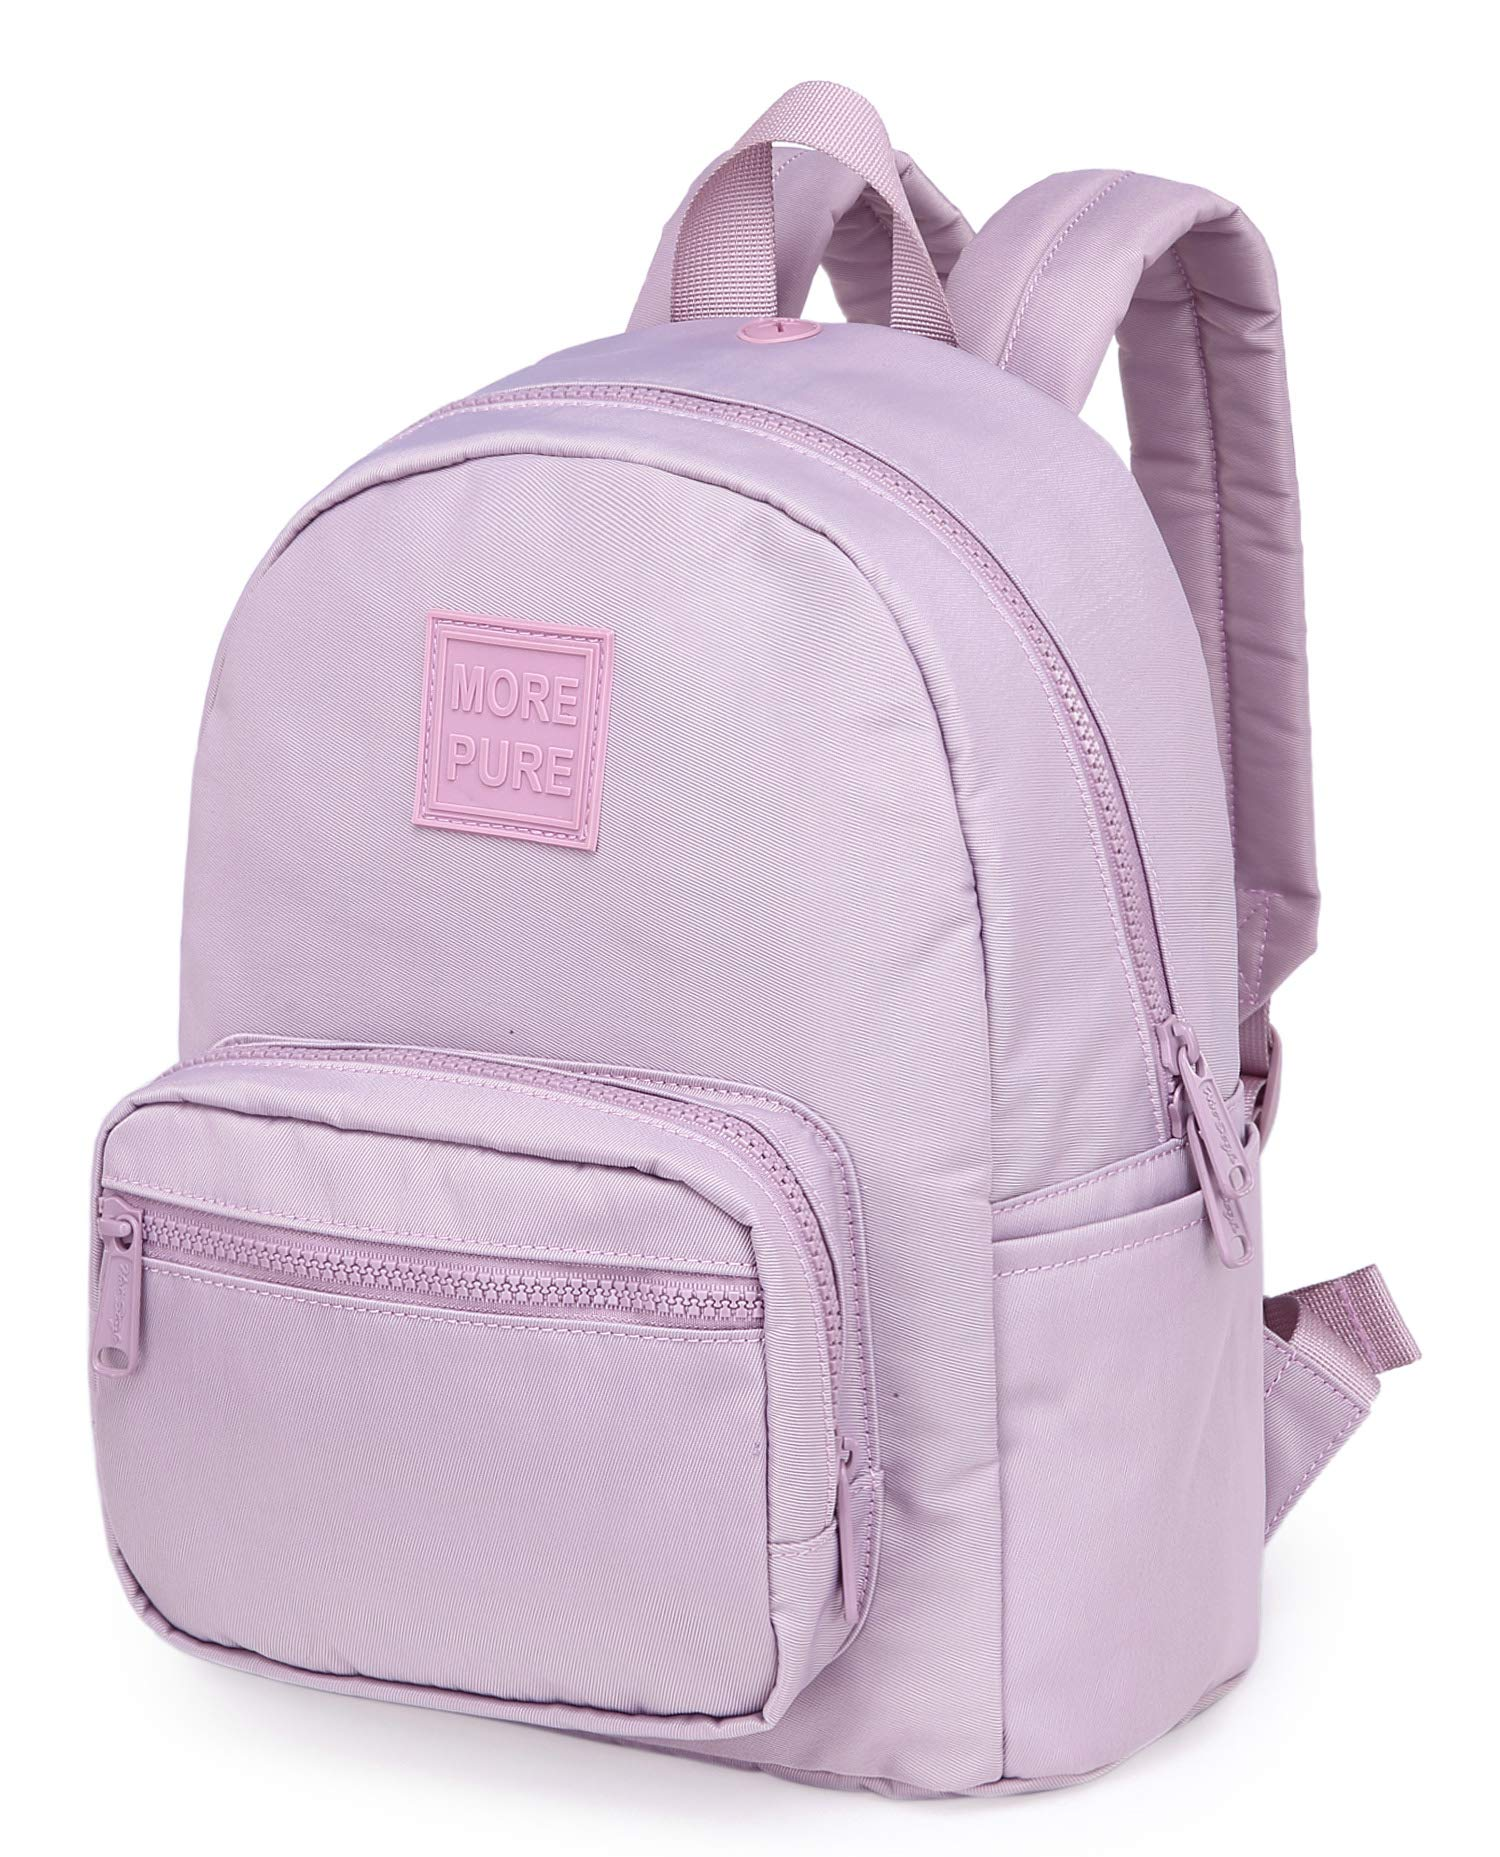 null - MOREPURE 9019s Small Backpack Purse Mini Travel Bag, 11.8x8.6x4.7in